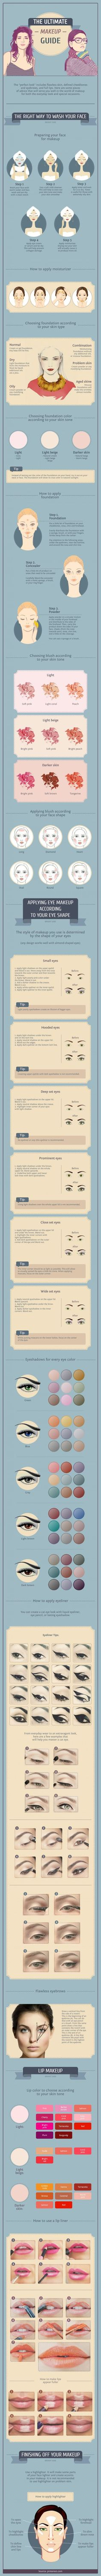 Step-by-step instructions to help you attain an absolutely flawless look. #eyemakeupstepbystep